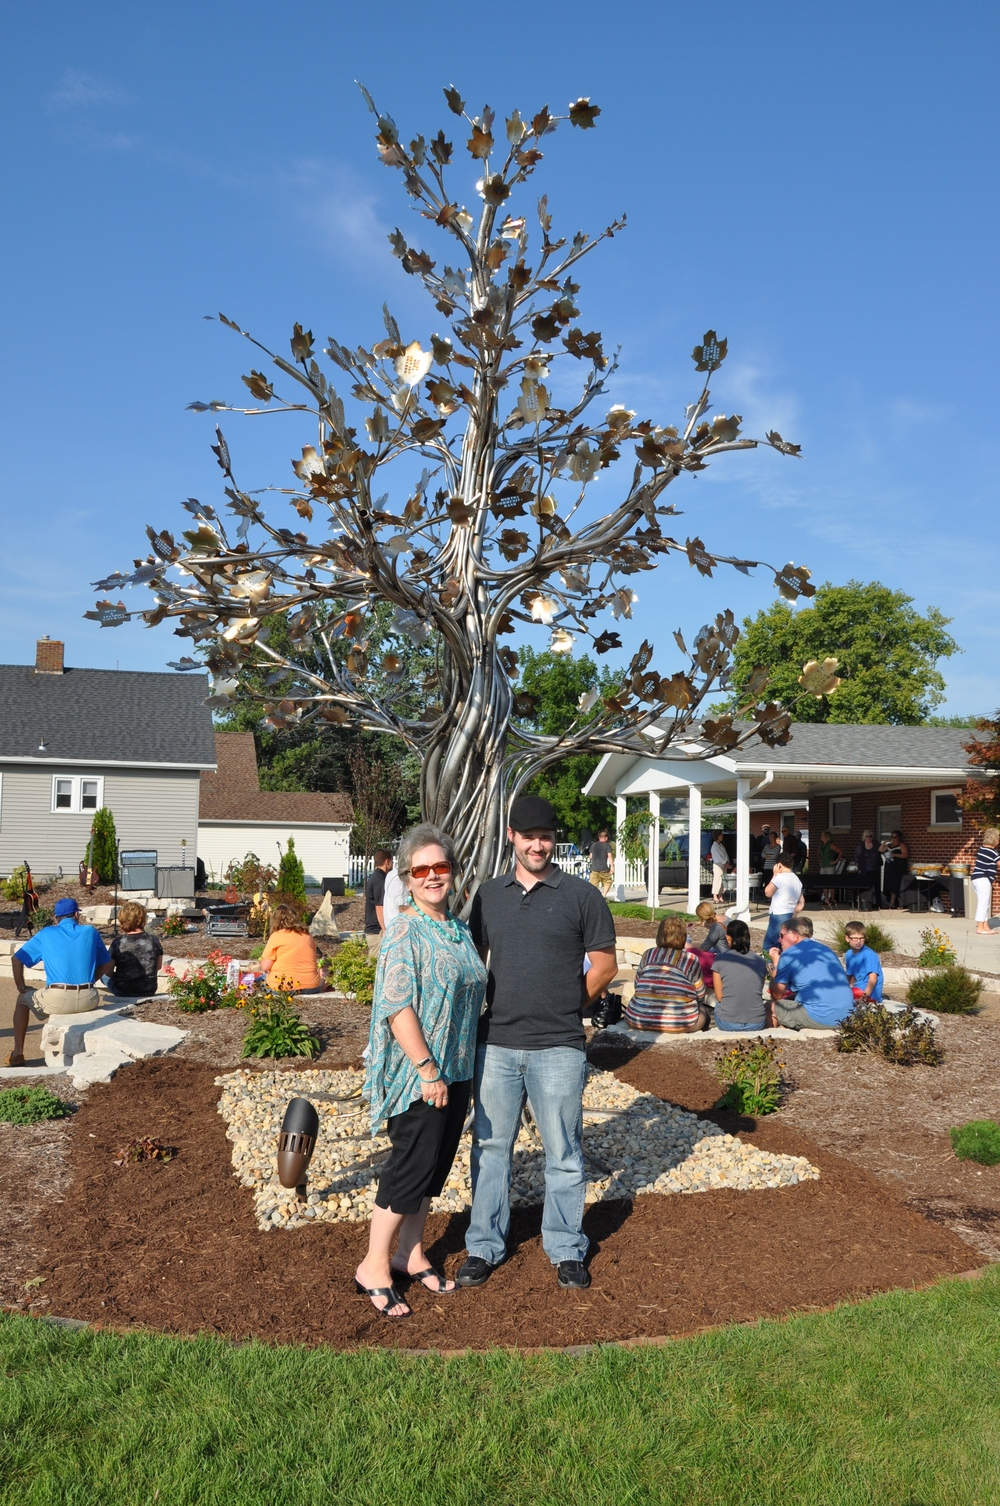 Giving Tree sculptor, Morgan Elser, and her lead fabricator, who is also Morgan's nephew, Steven Fosdyck